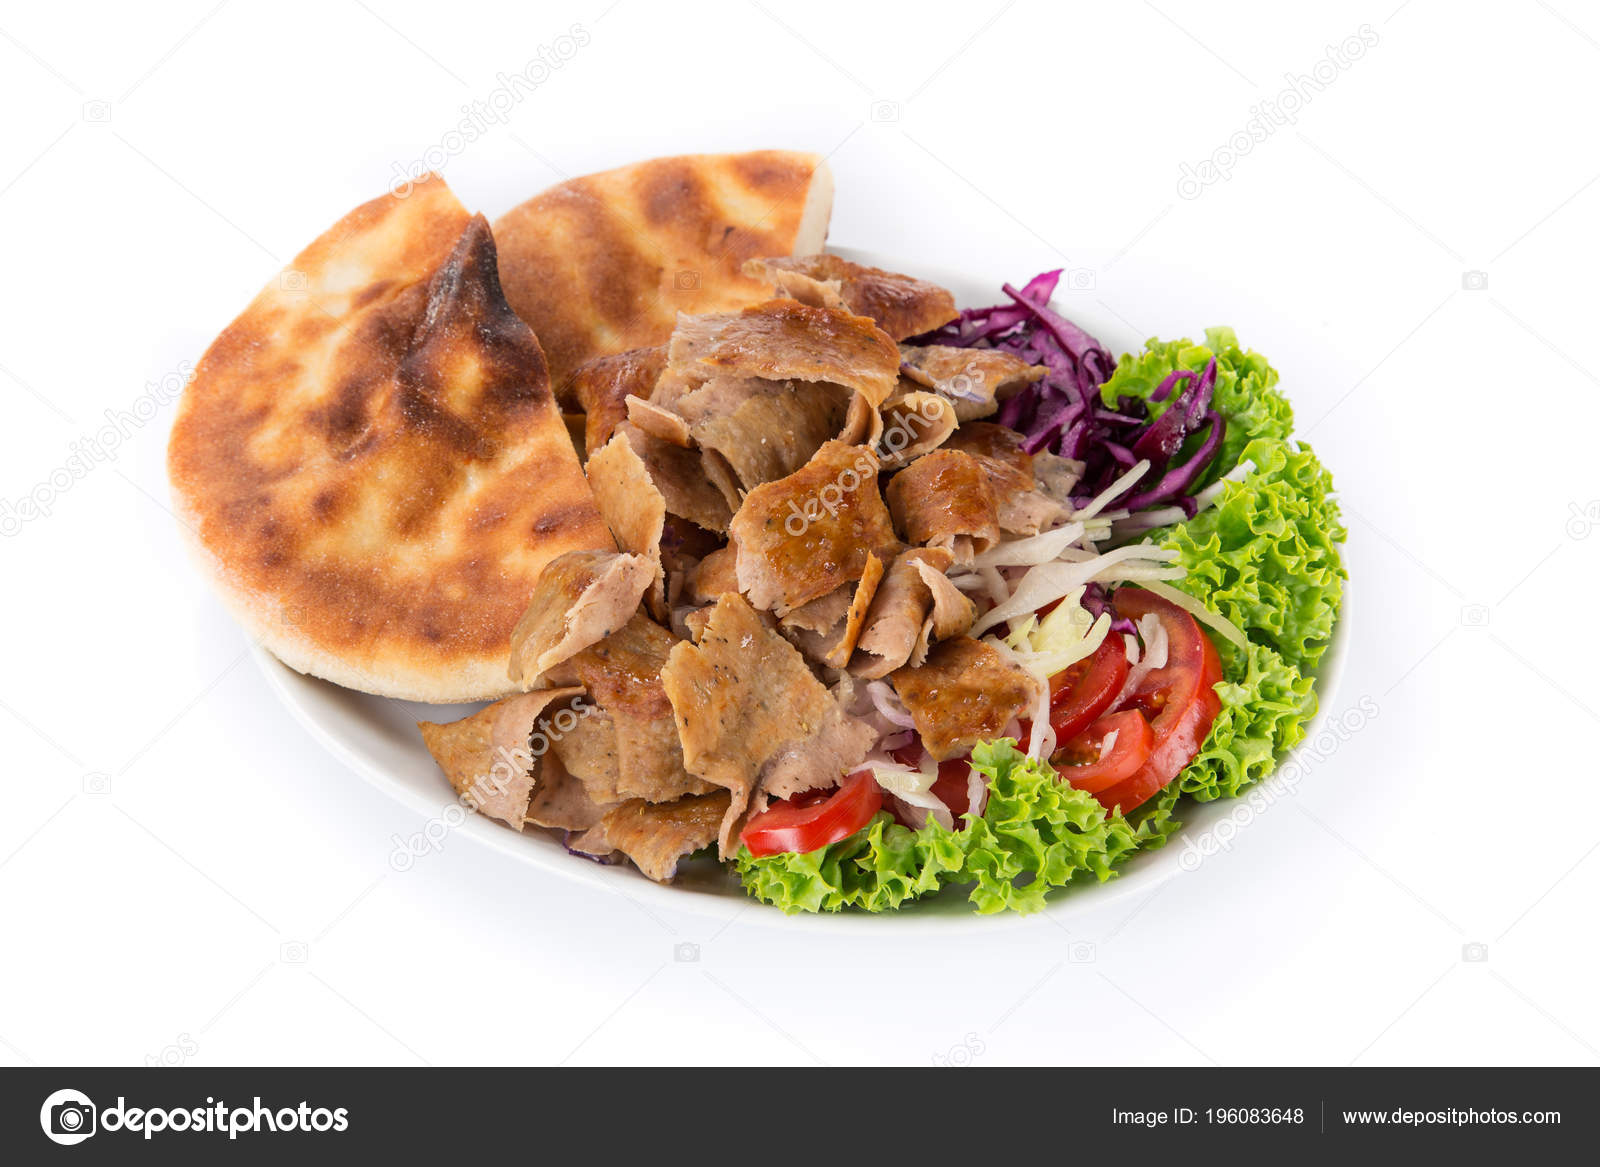 Turkish Doner Kebab Plate On White Background Stock Photo Image By C Kesu01 196083648